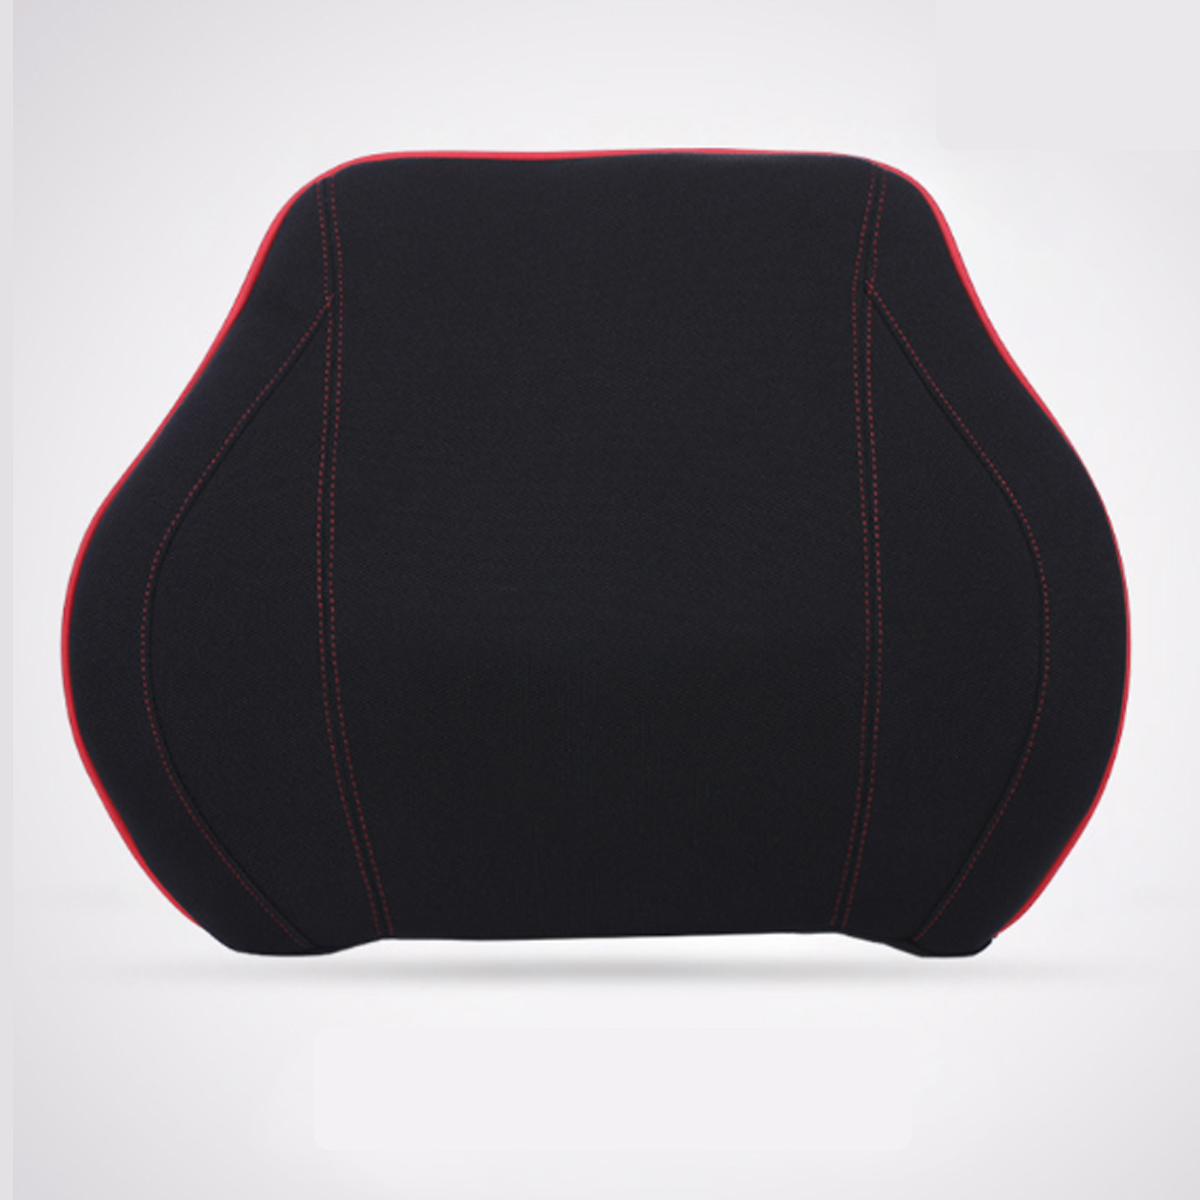 Space Memory Cotton Car Headrest Auto Seat Waist Back Support Pillow Back Cushion Pad Message Home Office